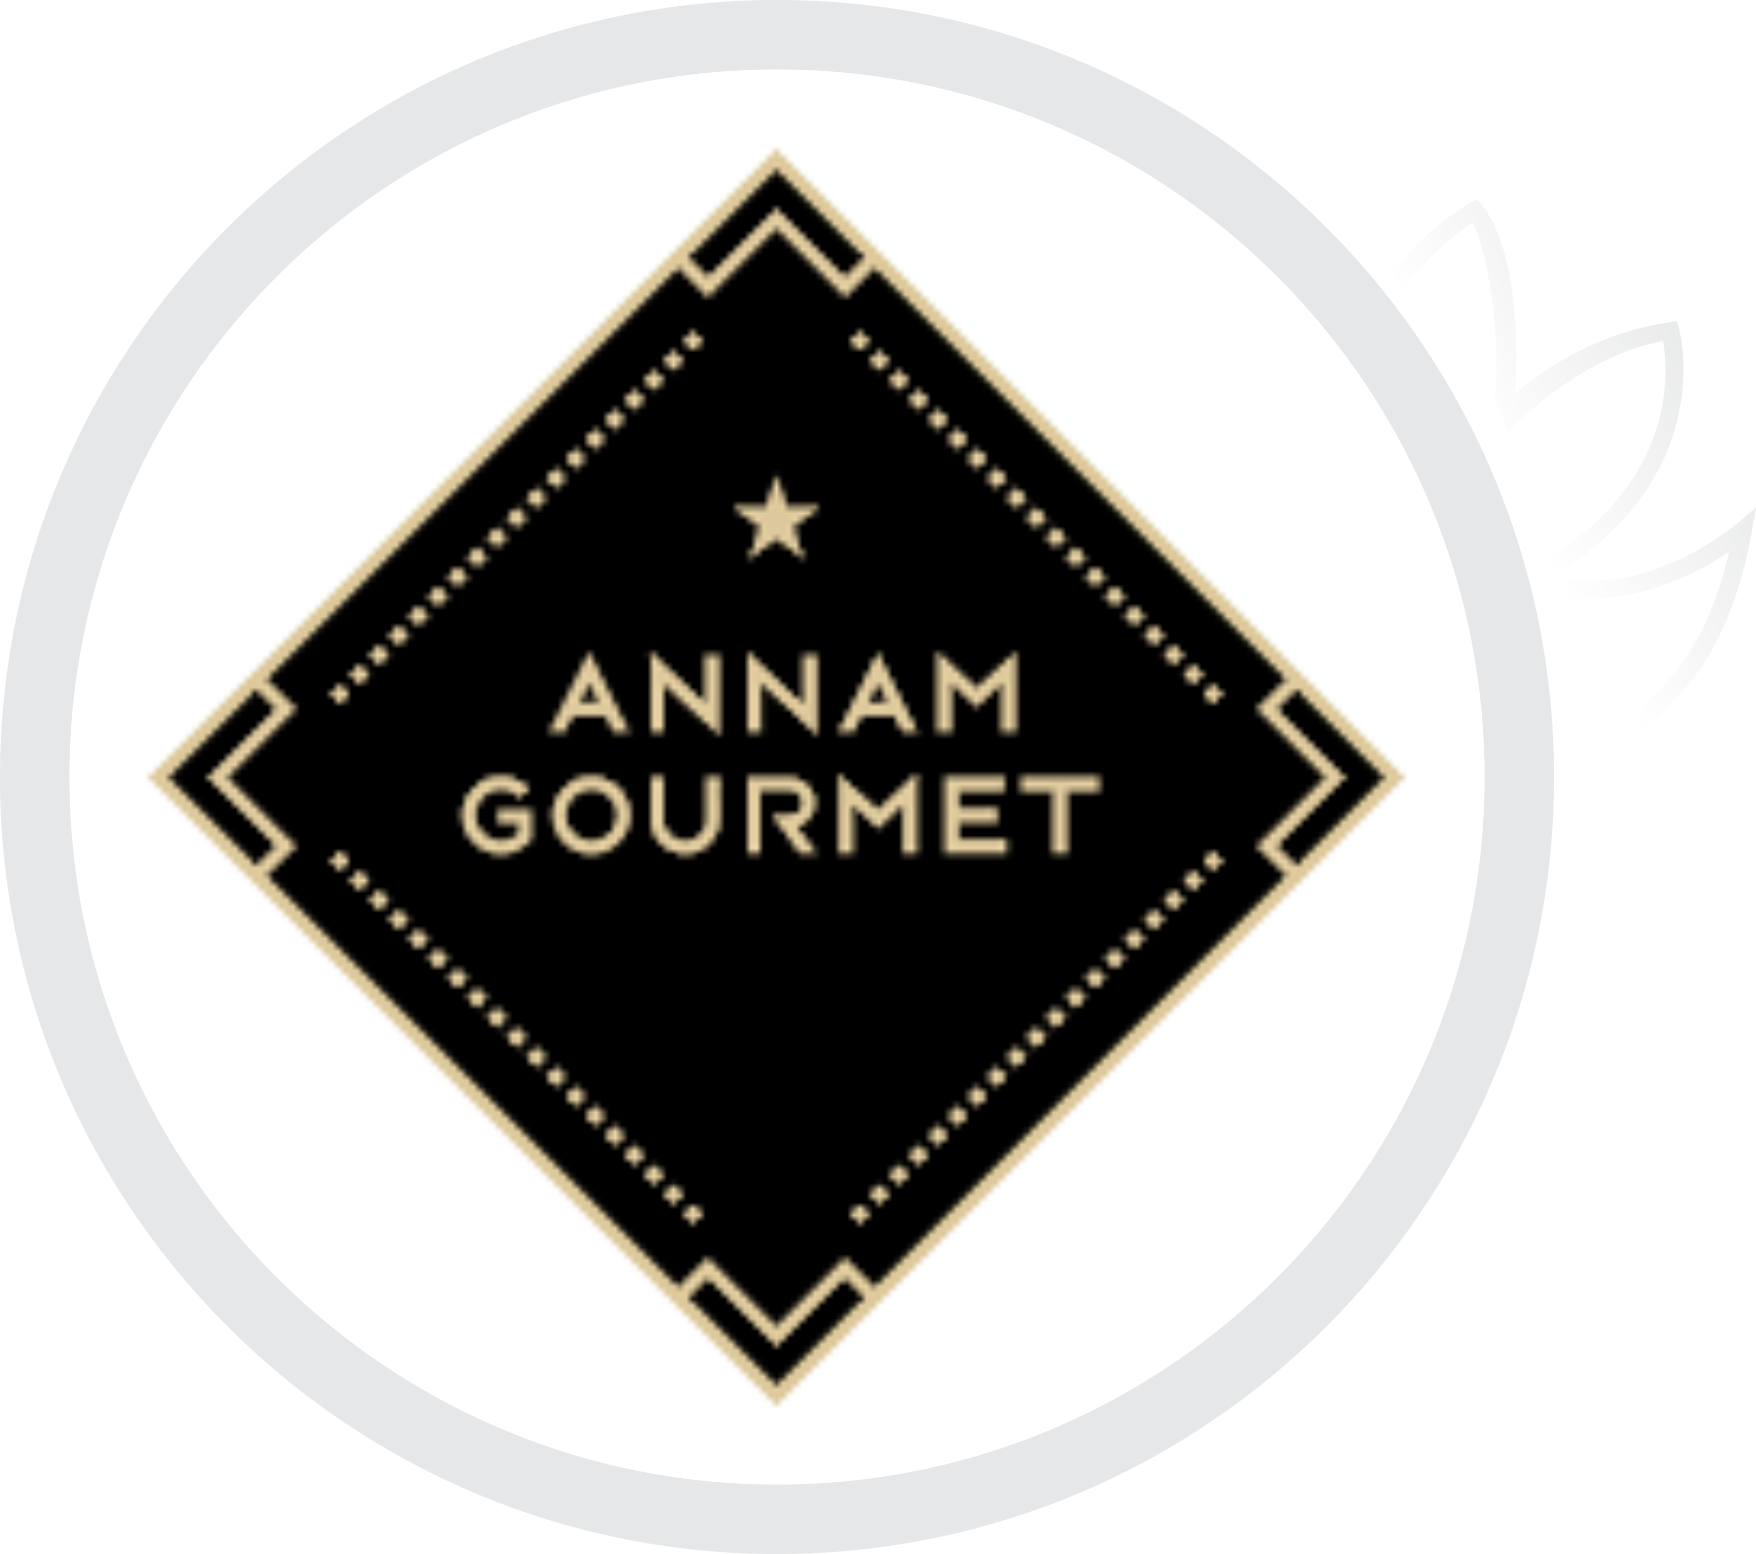 High quality Annam Gourmet logo